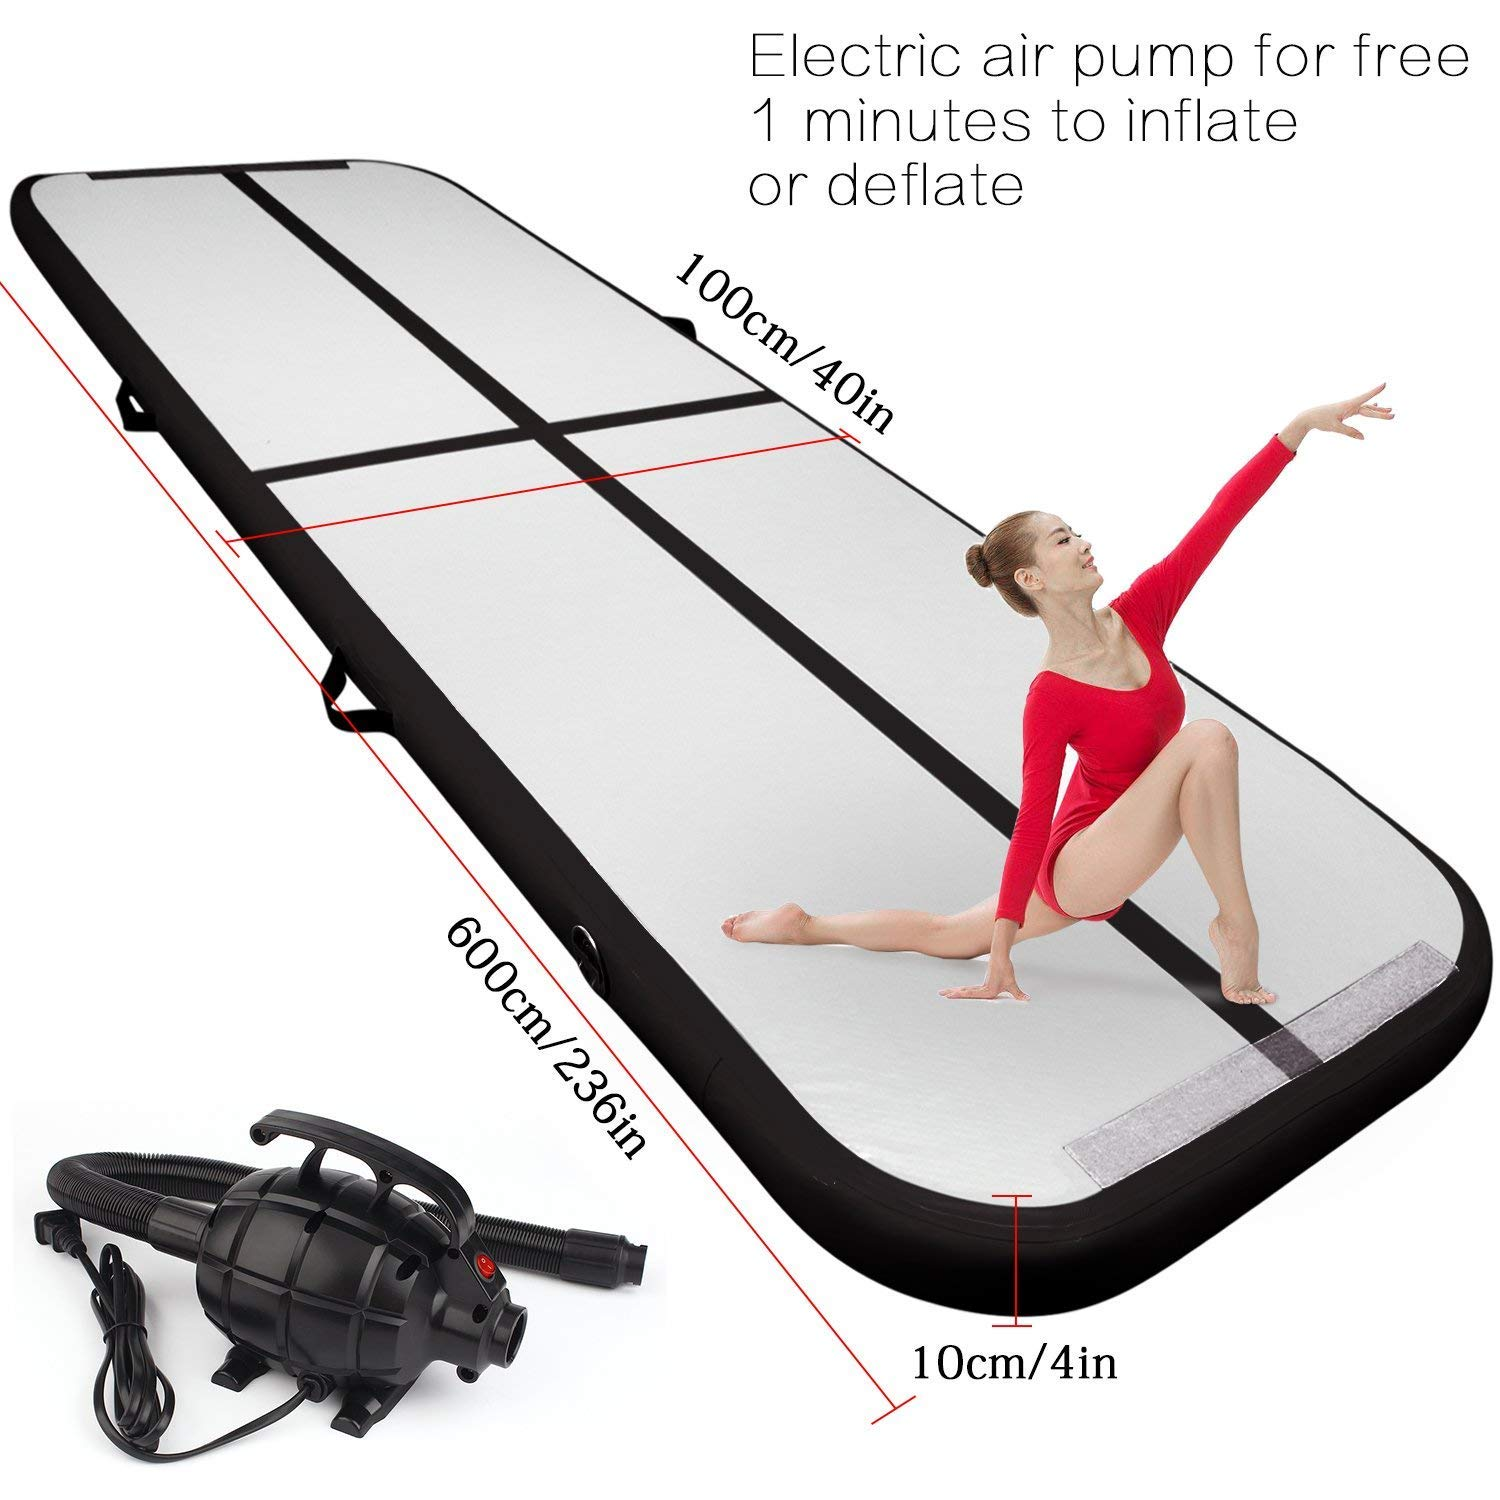 9.84ft/13.12ft/16.4ft/19.68ft/3.28ft air track tumbling mat inflatable gymnastics airtrack with Electric Air Pump for Practice Gymnastics, Tumbling,Parkour, Home Floor and Martial Arts (Black, 19.68)